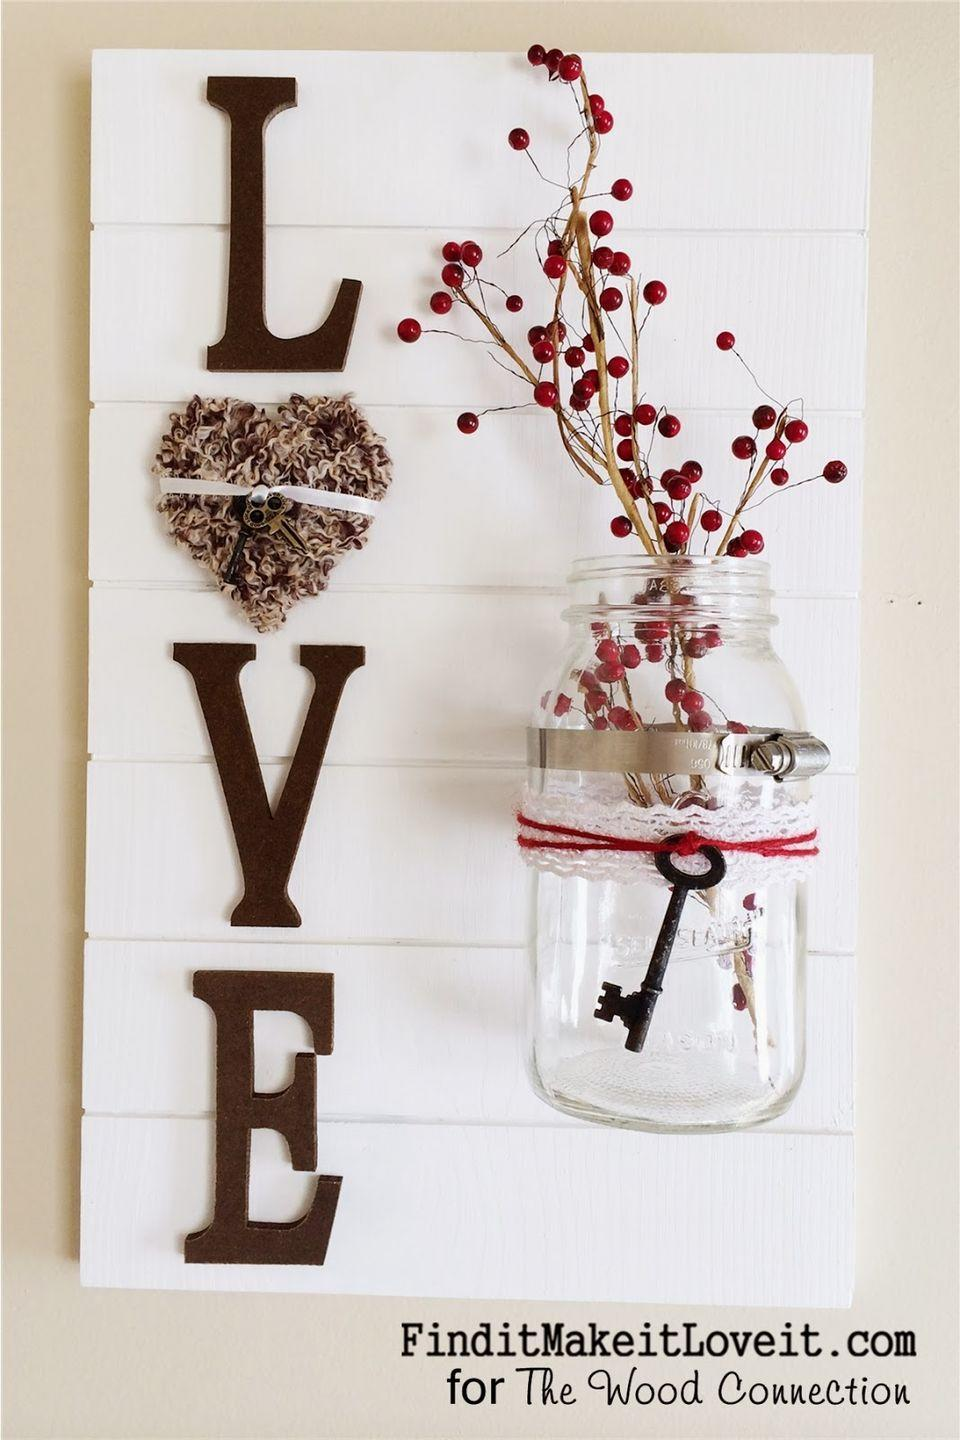 """<p>Just admit it: This """"love"""" slat sign is pretty enough to keep up all year long. </p><p><strong>Get the tutorial at <a href=""""http://www.thewoodconnectionblog.com/loveslatsign/"""" rel=""""nofollow noopener"""" target=""""_blank"""" data-ylk=""""slk:The Wood Connection"""" class=""""link rapid-noclick-resp"""">The Wood Connection</a>.</strong></p>"""